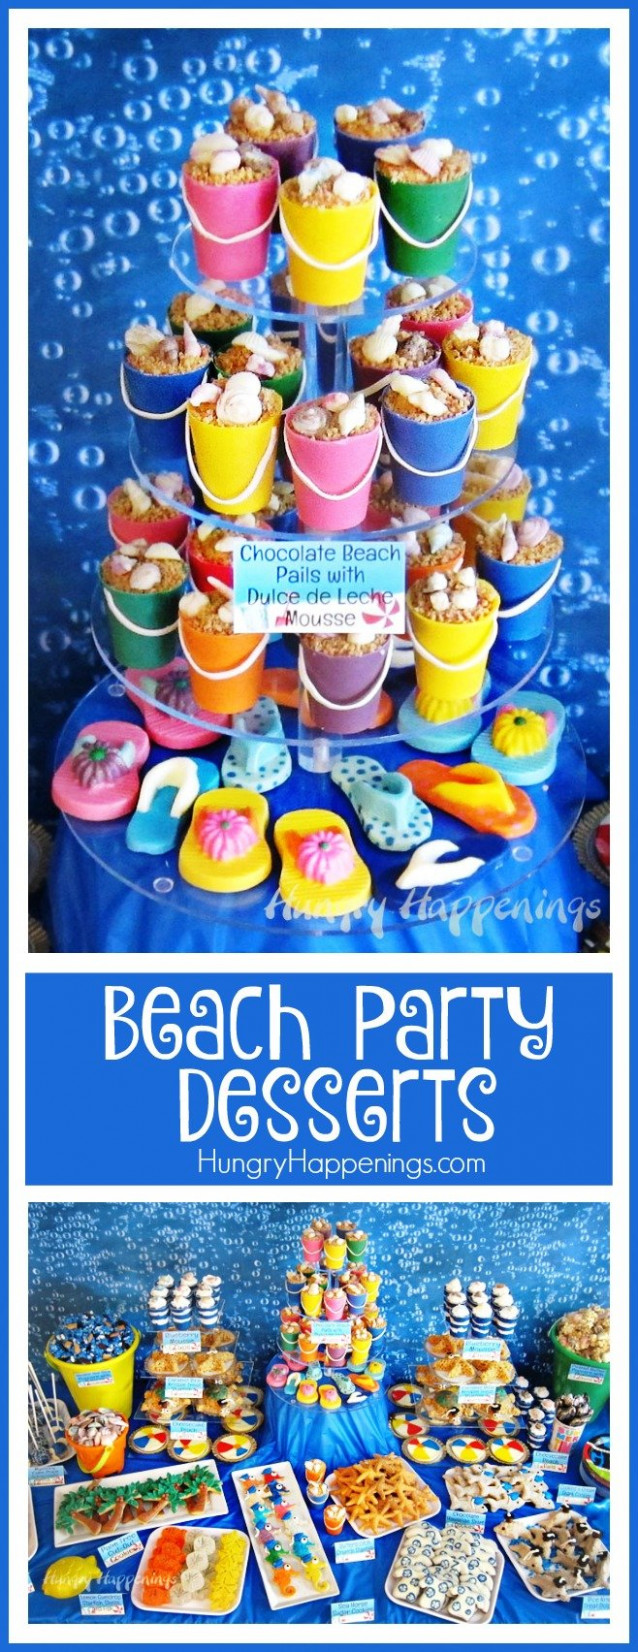 Beach Themed Party Ideas & Under the Sea Desserts - ocean themed food recipes